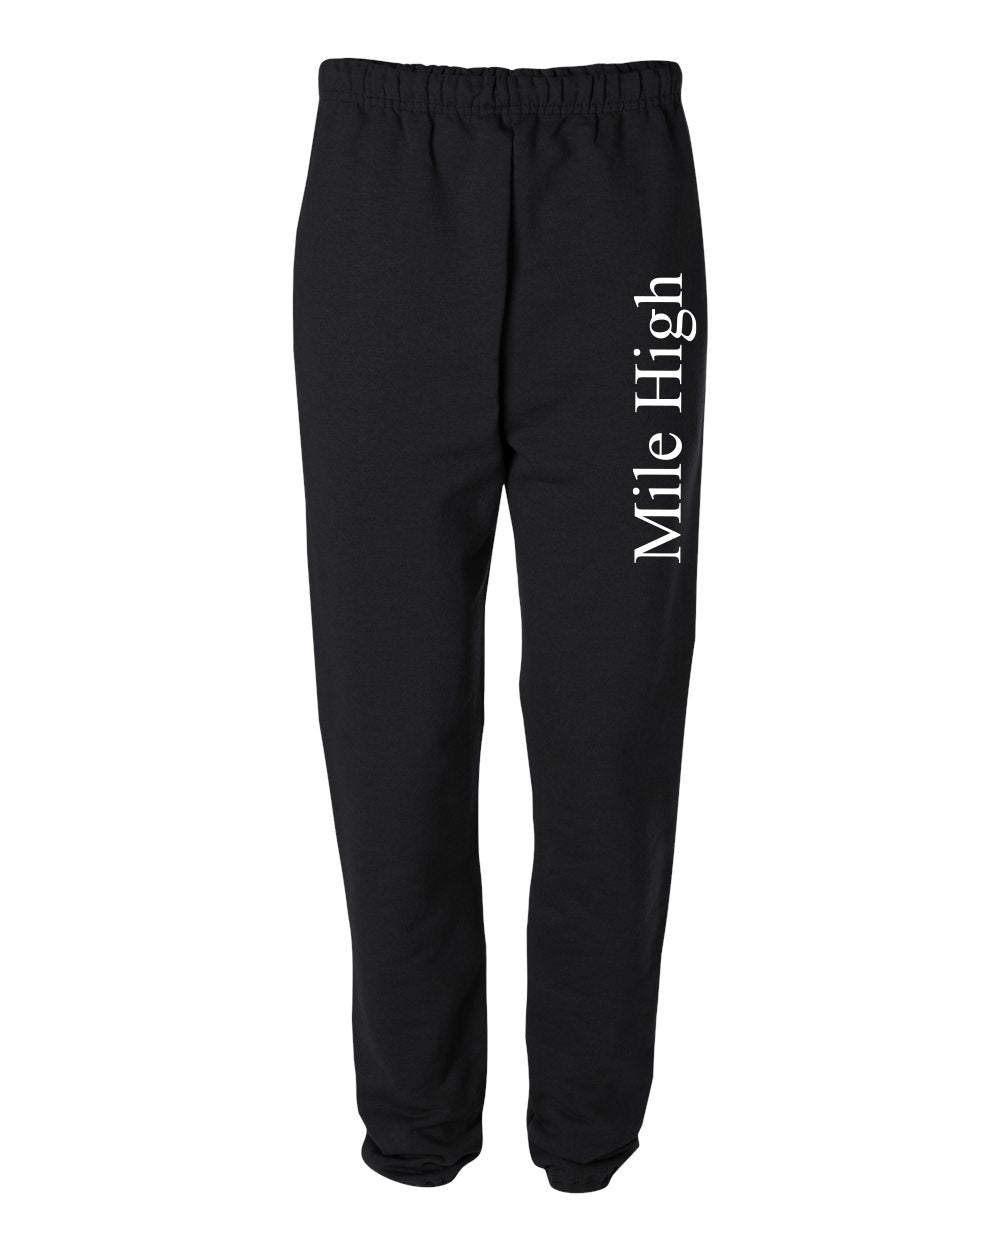 Team Mile High RC Sweatpants